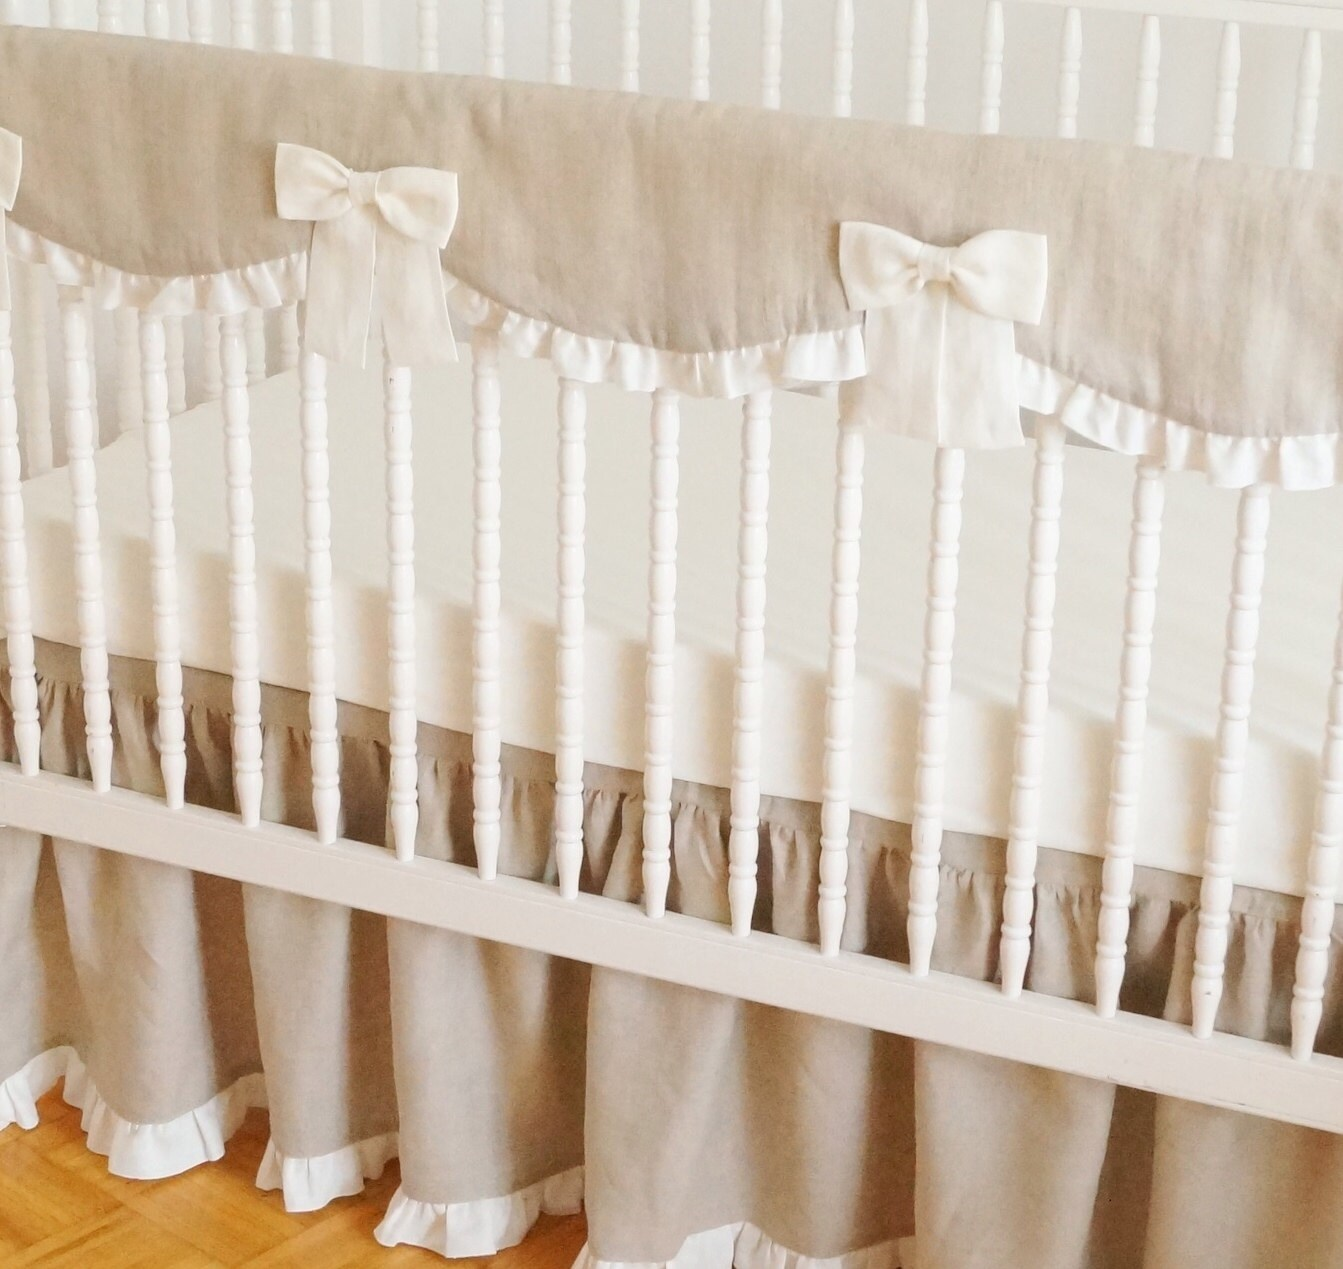 Linen Crib Bedding Rail Guard Rail Cover. Bumperless Crib